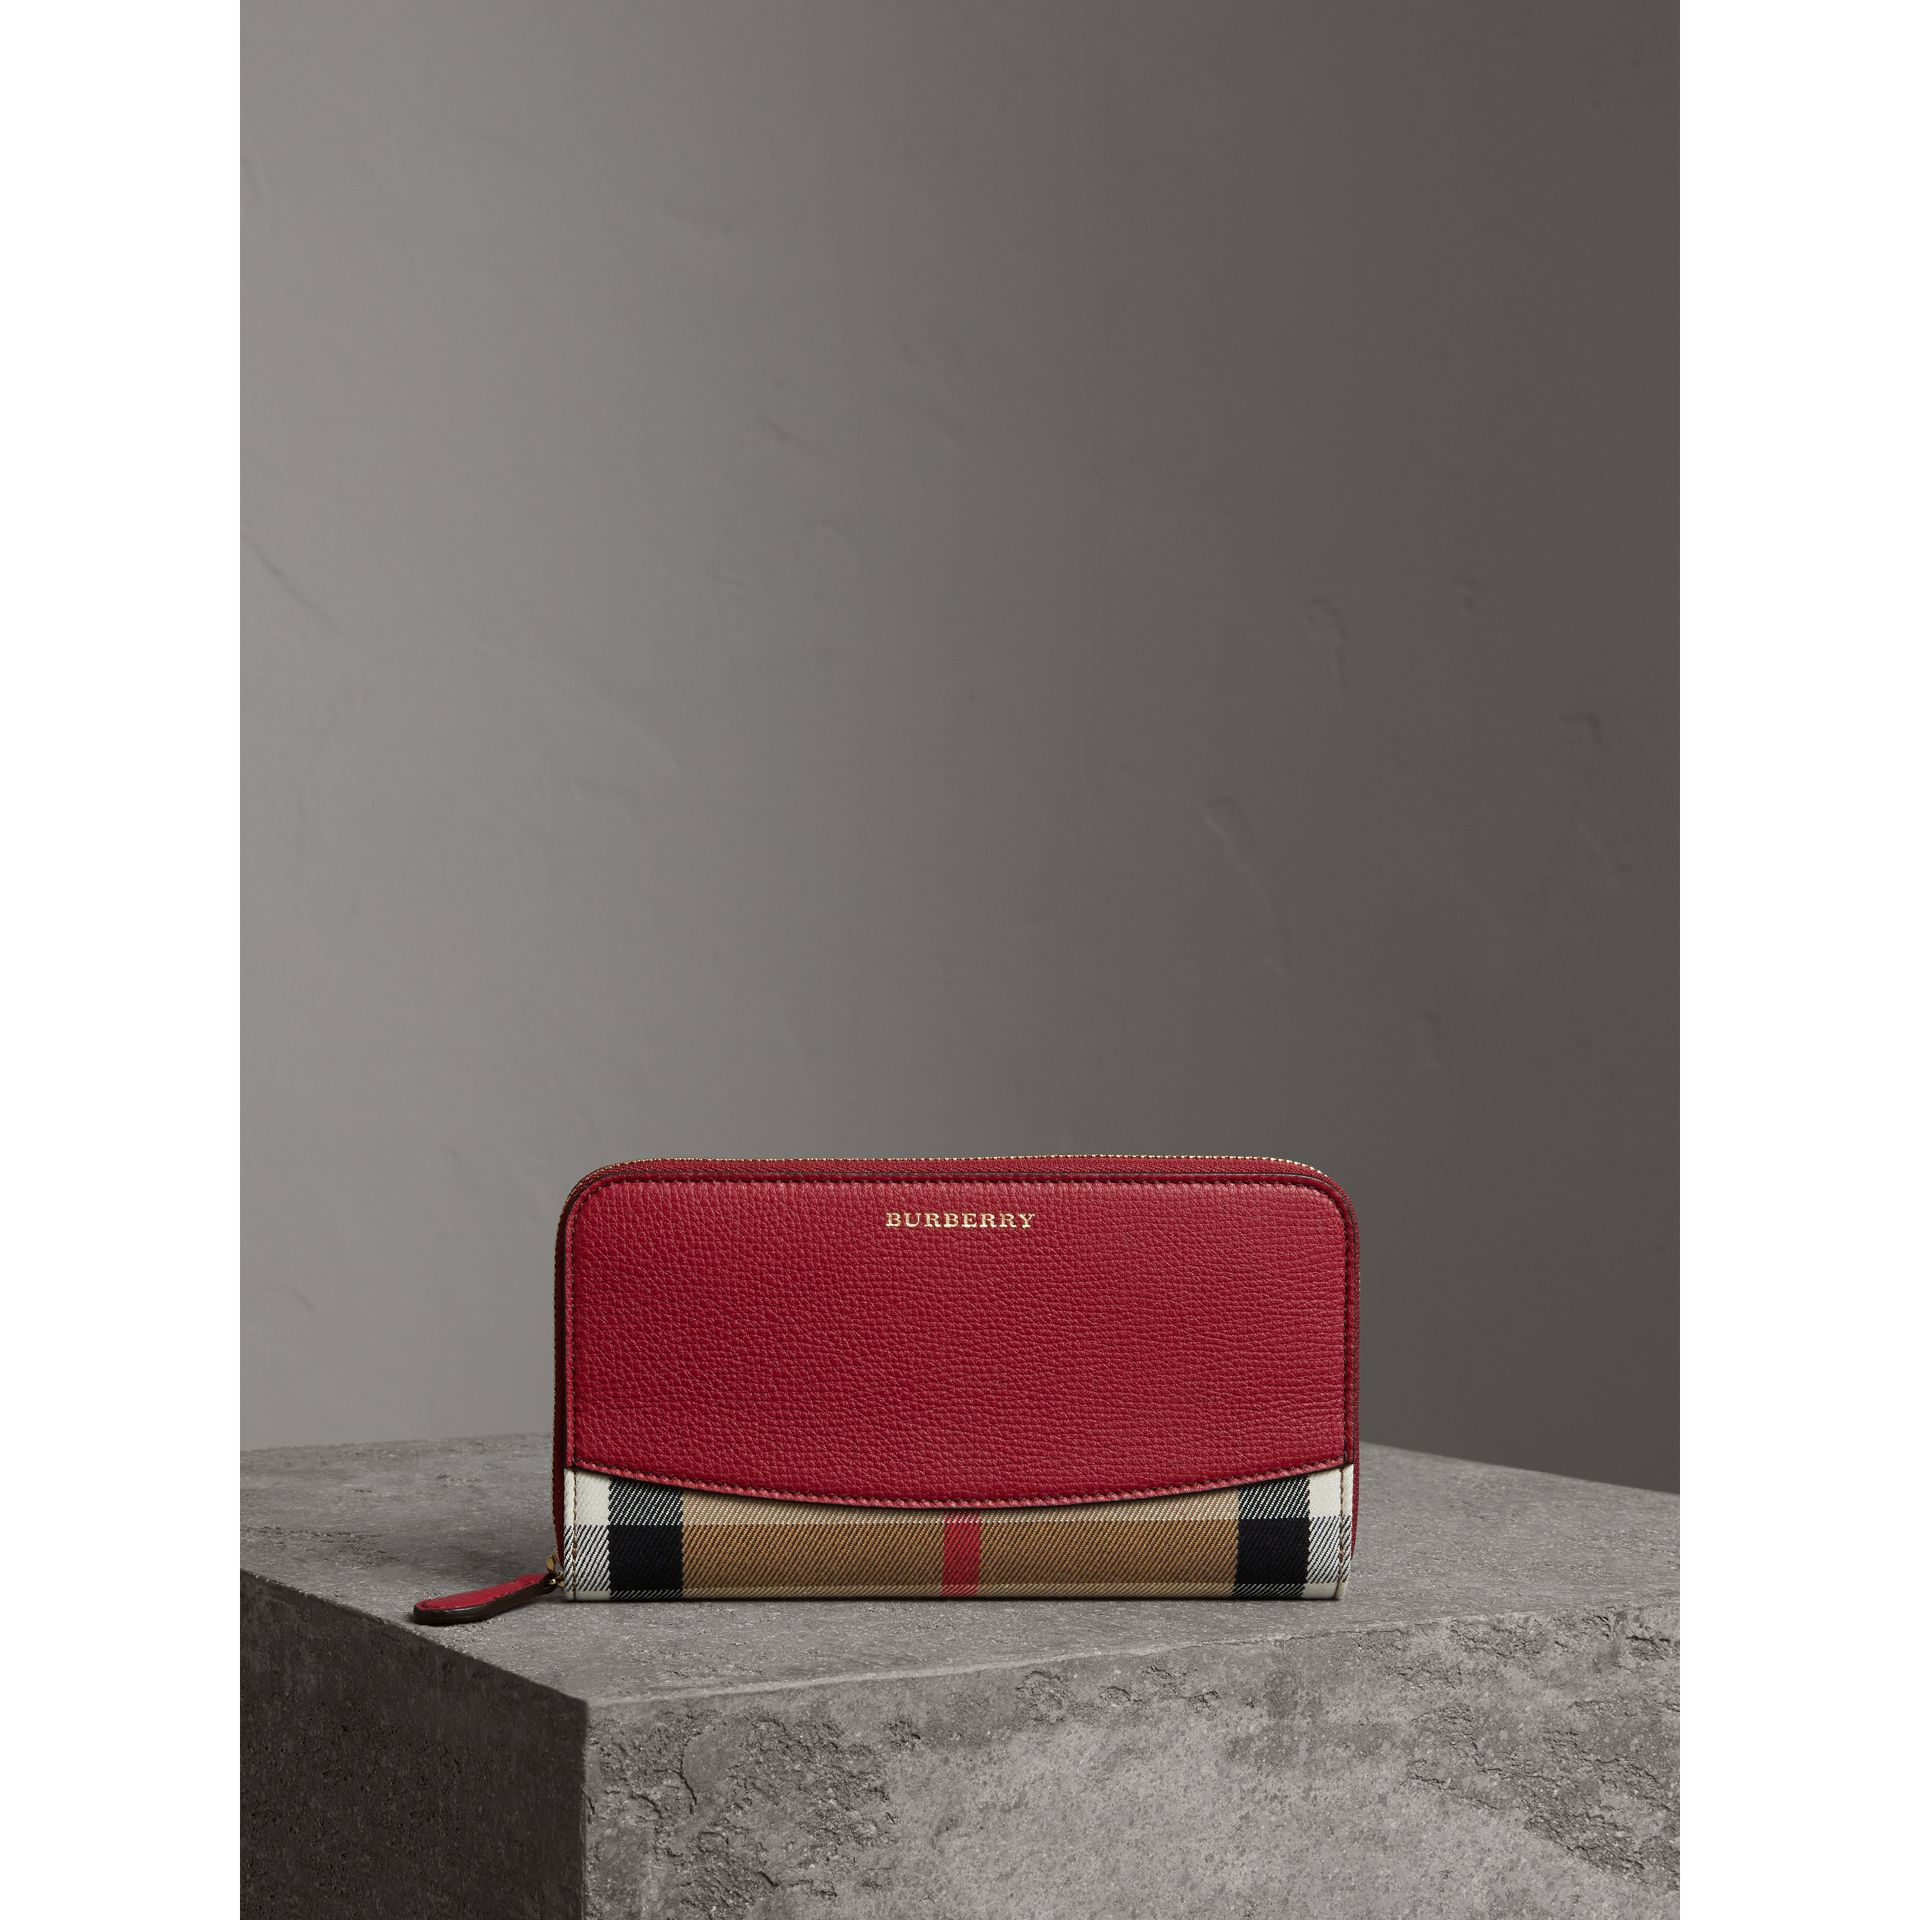 House Check and Leather Ziparound Wallet in Russet Red - Women | Burberry Australia - gallery image 4